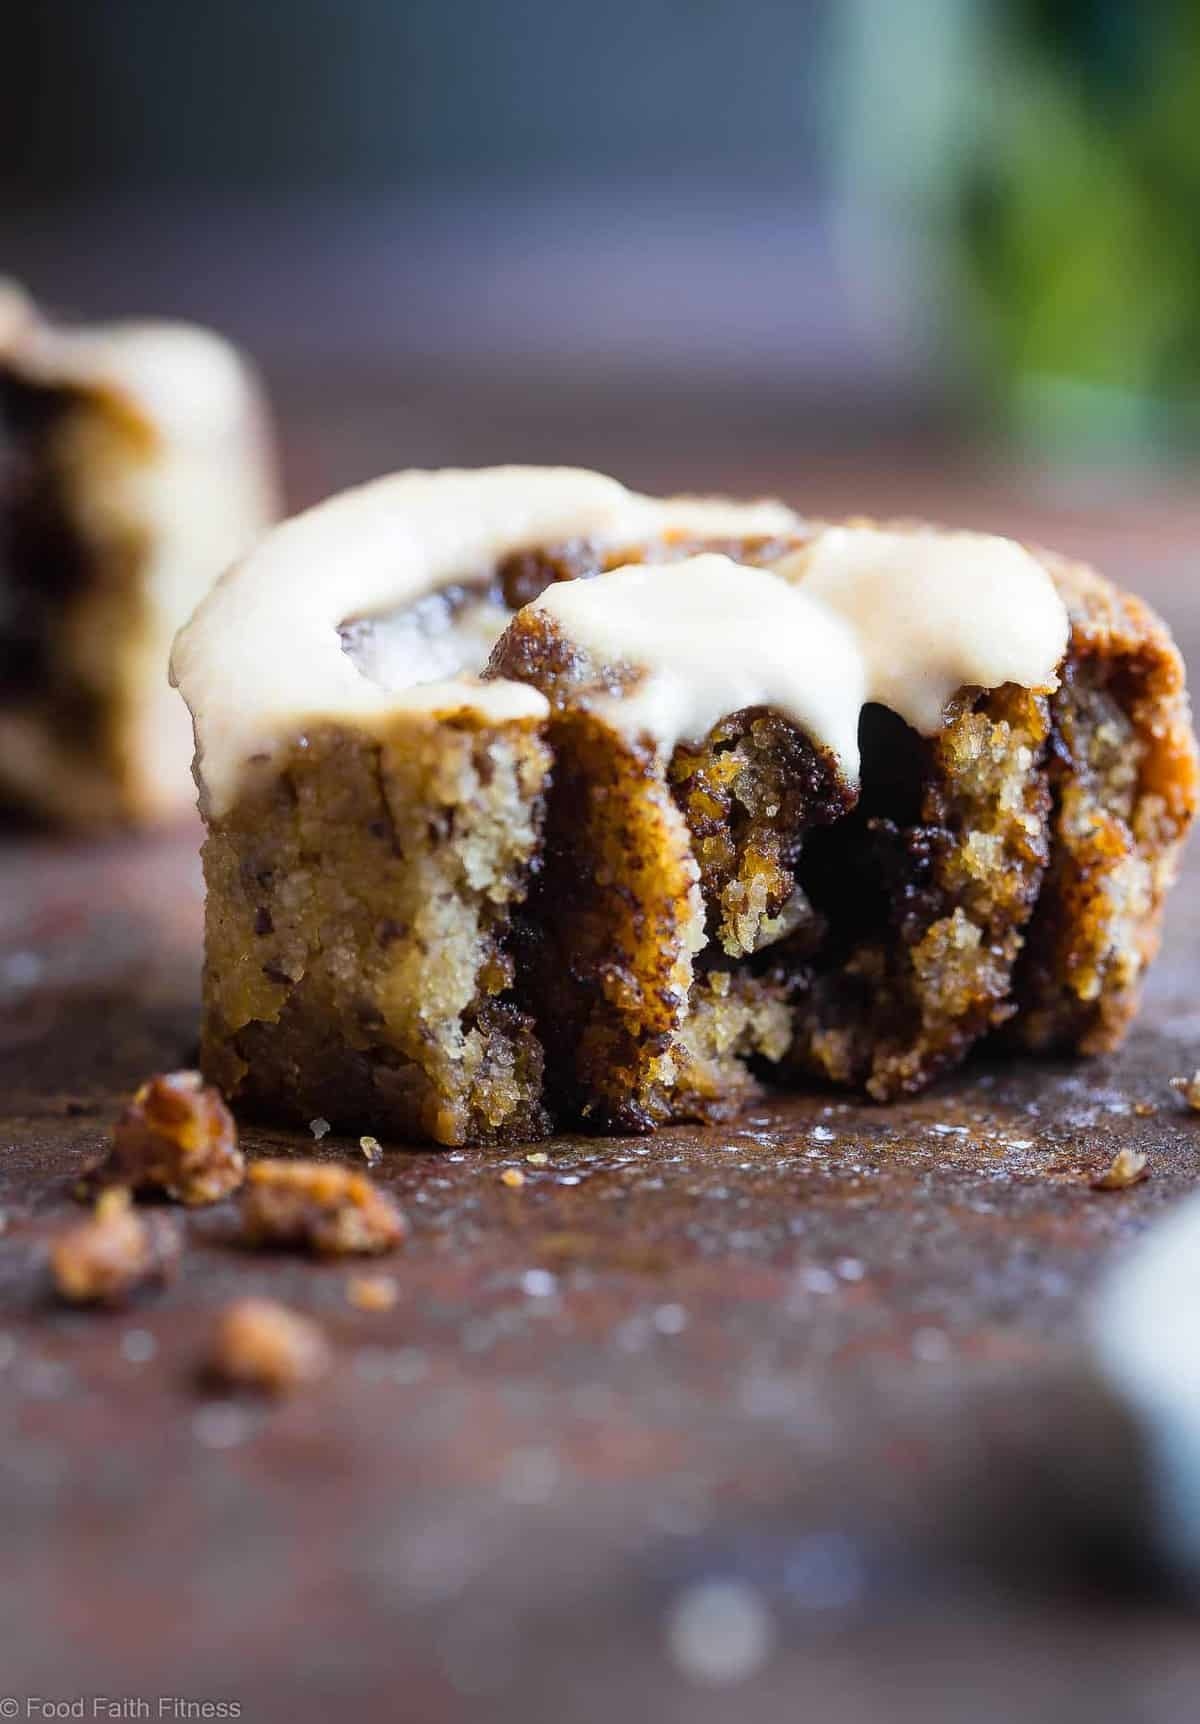 The Best Paleo Cinnamon Rolls - These gluten free cinnamon rolls area simple, wholesome remake of the classic baked good that you can't even tell is healthy, and gluten/dairy free! SO soft, fluffy and YUMMY! | #Foodfaithfitness | #Paleo #Glutenfree #Healthy #Dairyfree #Cinnamonrolls